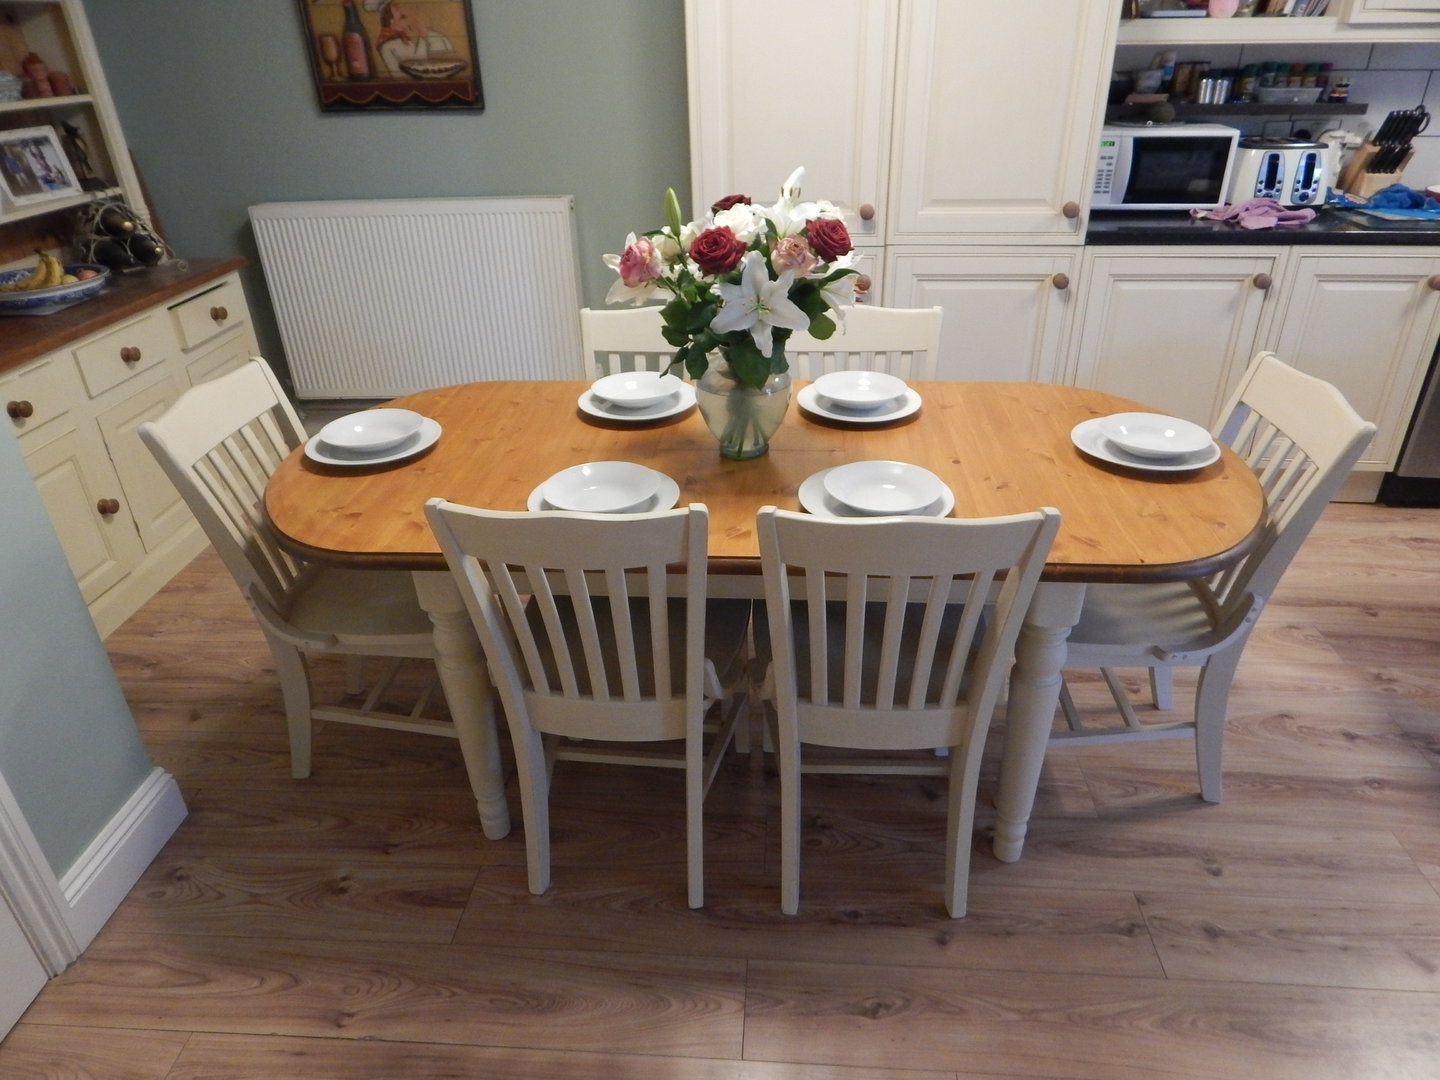 Widely Used Extending Dining Tables And 6 Chairs For Shabby Chic , Ducal Pine Extending Dining Table & 6 Chairs (View 25 of 25)